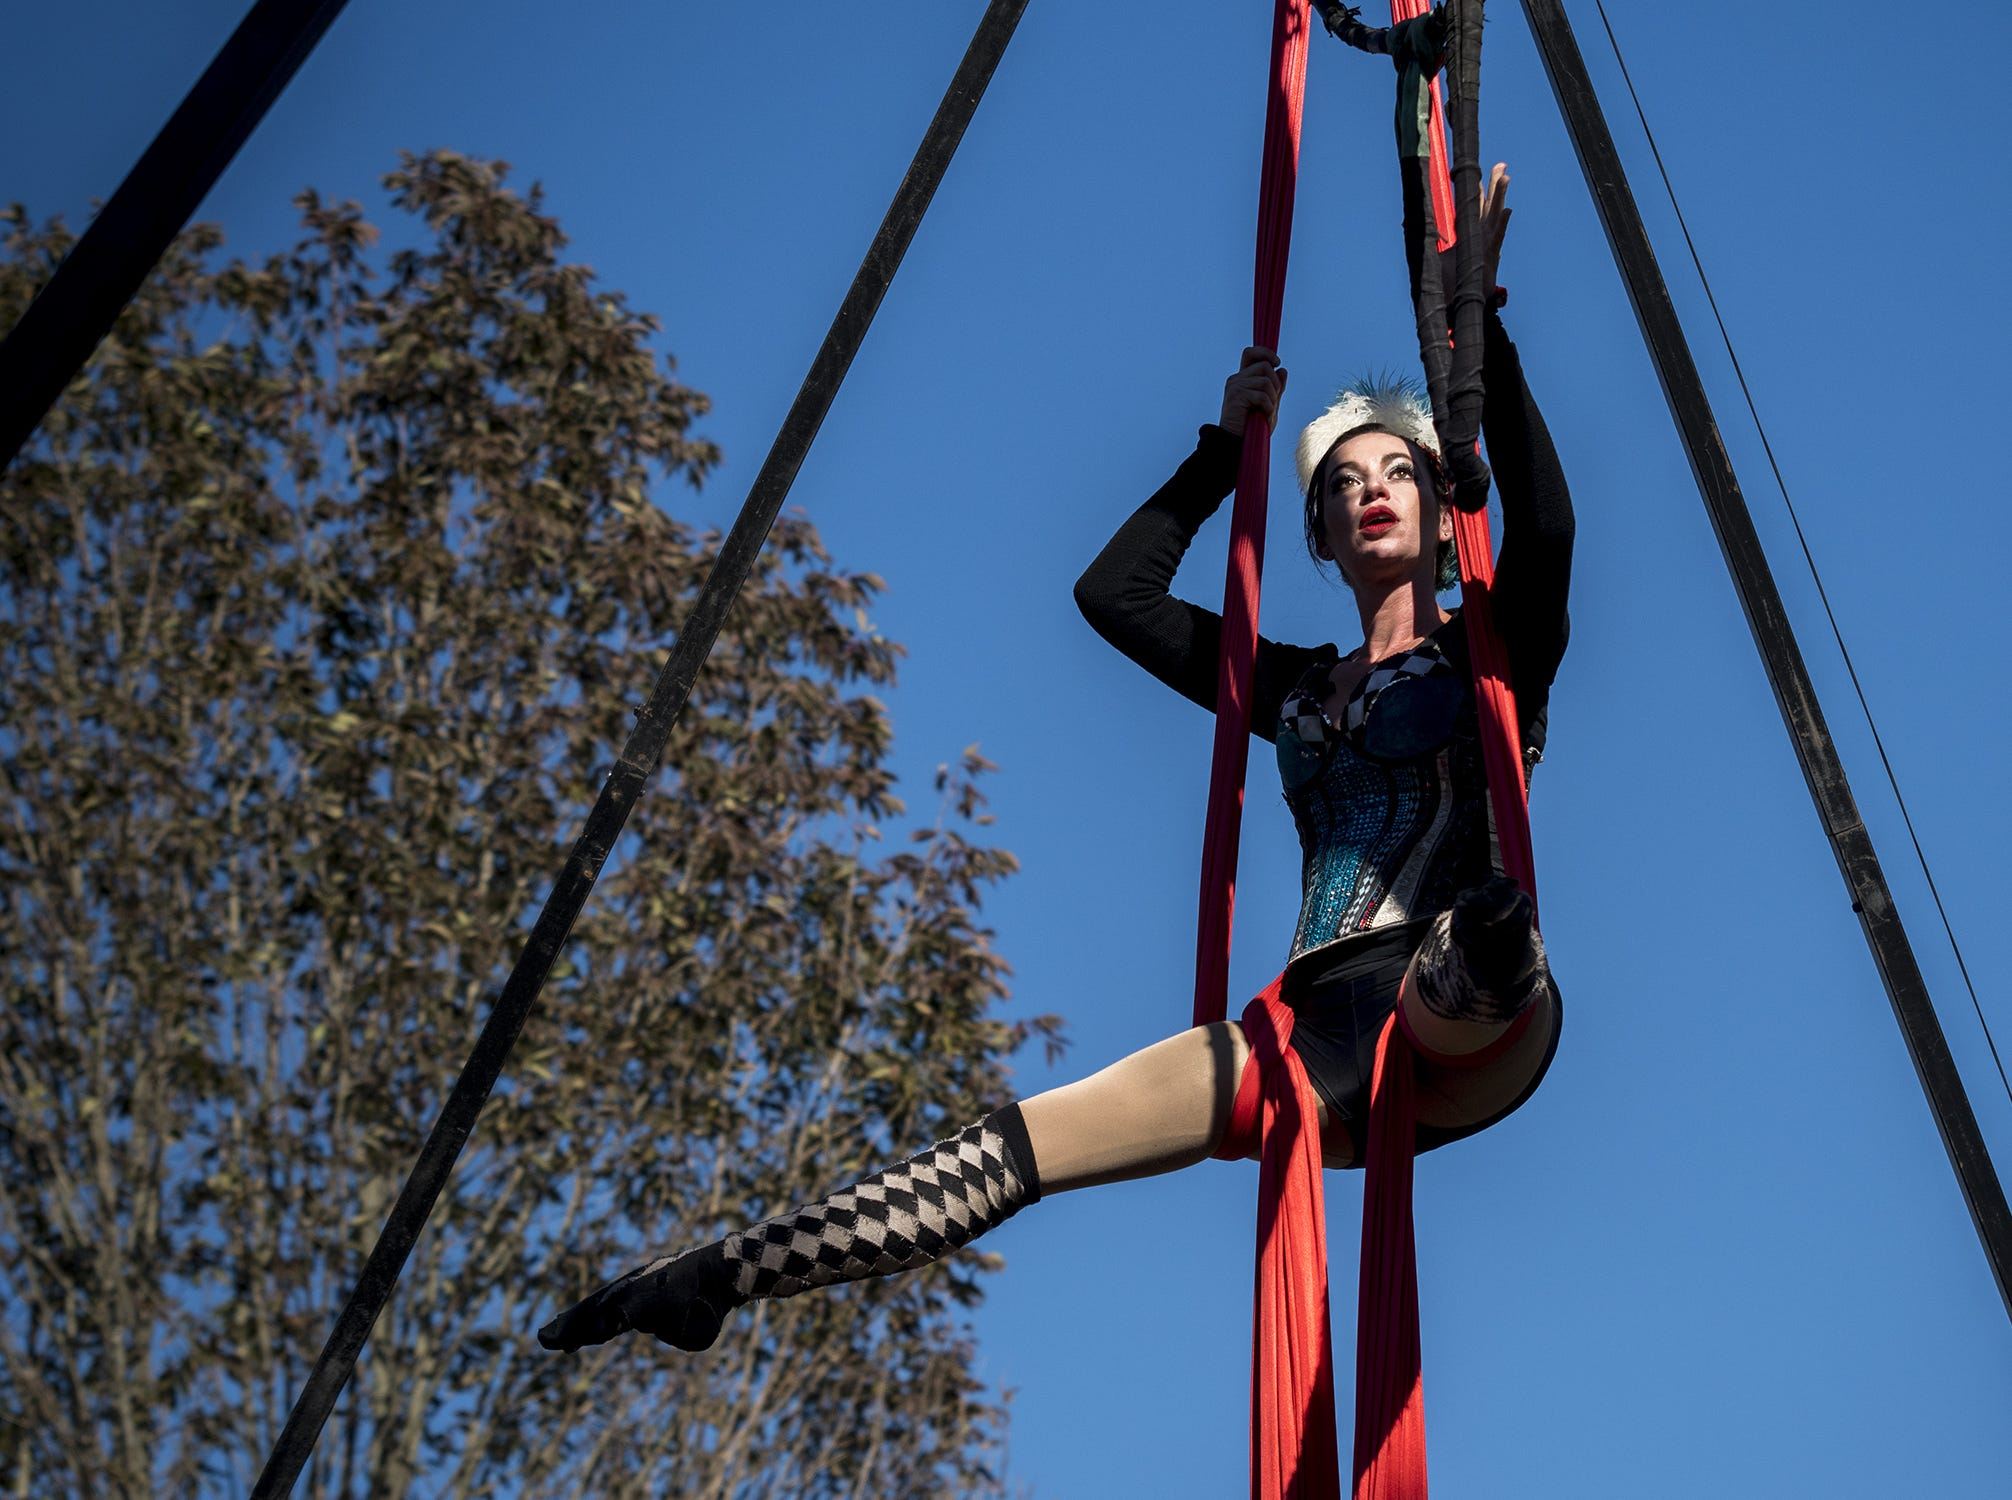 Jen, of Cirqa Brava shows off her acrobatic skill on the silks during Romance Weekend at the Ohio Renaissance Festival Sunday, October 21, 2018 in Waynesville, Ohio.